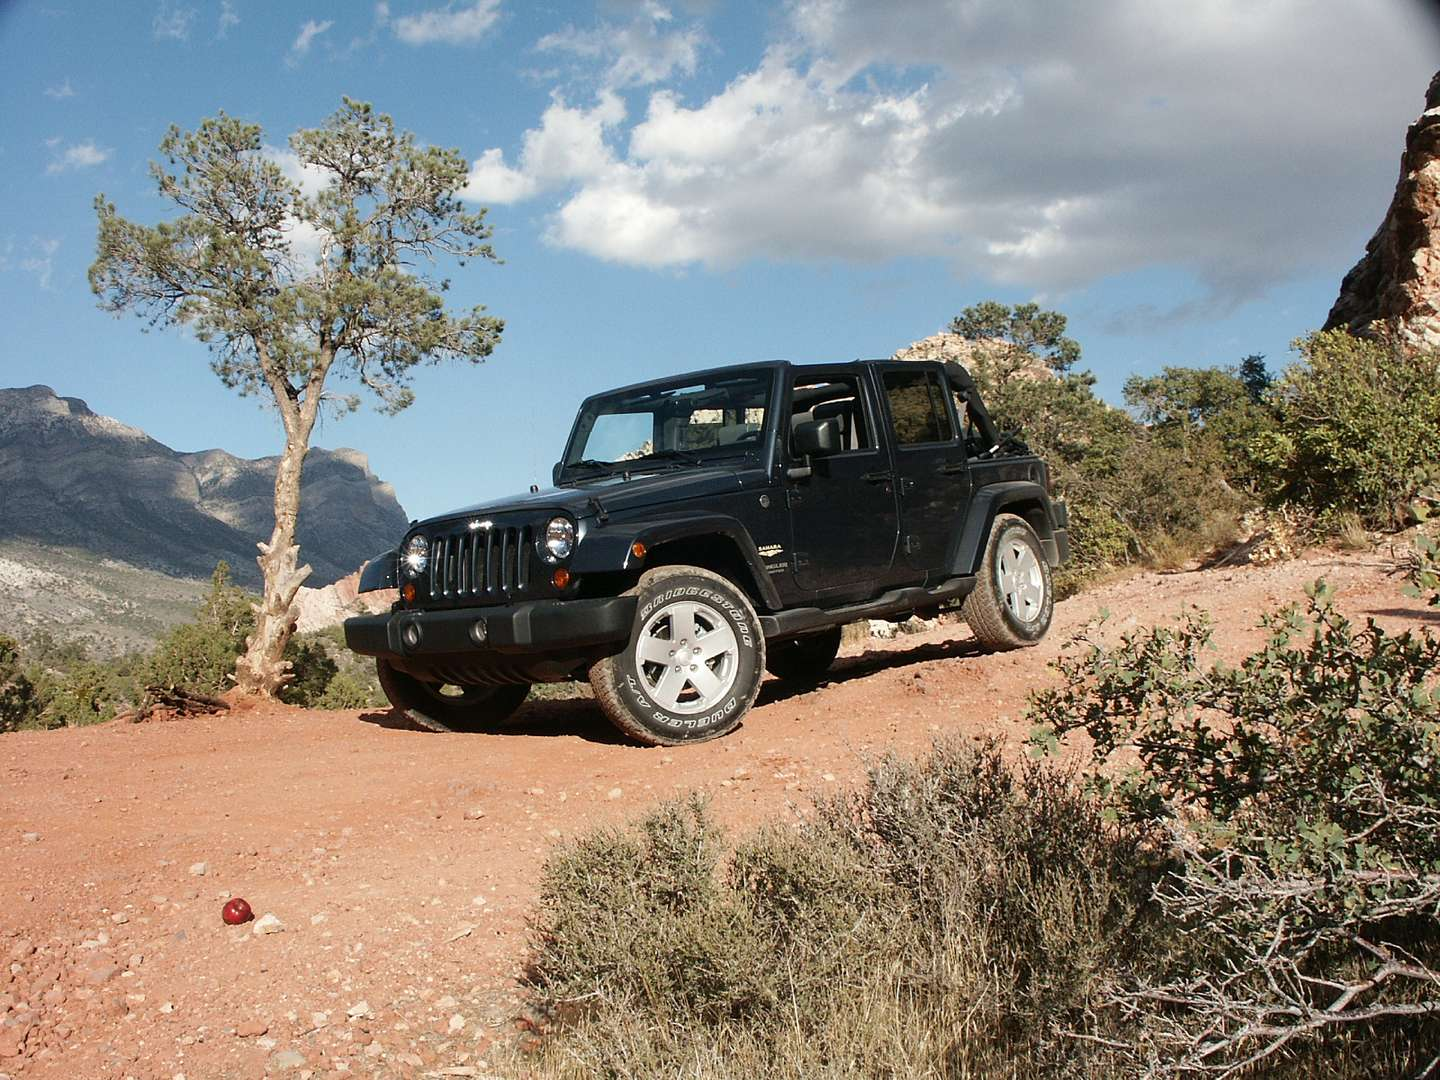 Jeep Wrangler Unlimited Sahara #9652889